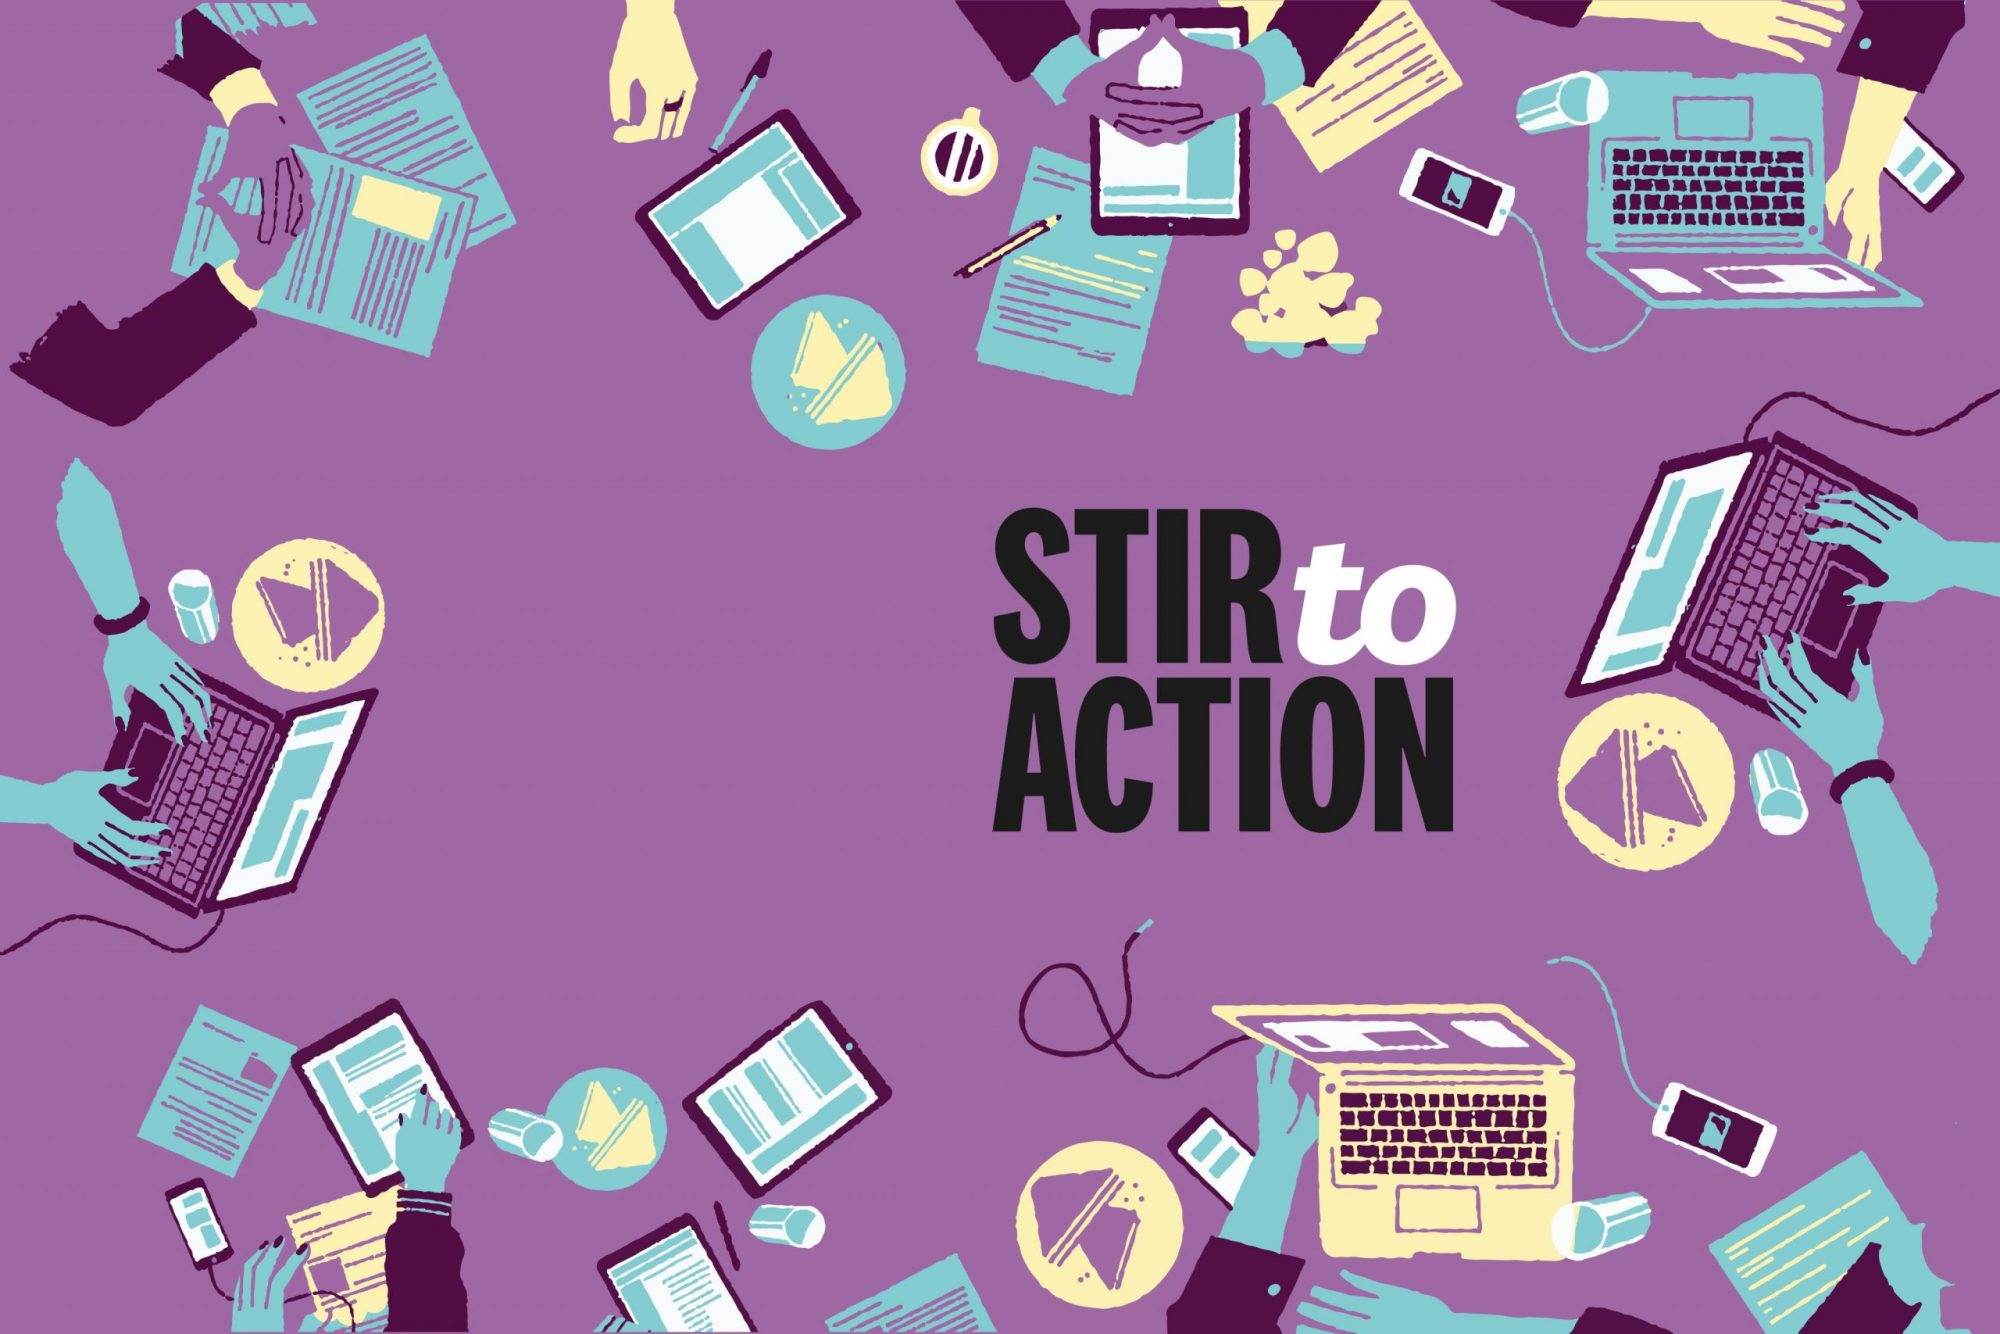 Stir to Action and Power to Change partner to relaunch 20 webinars for free to support communities